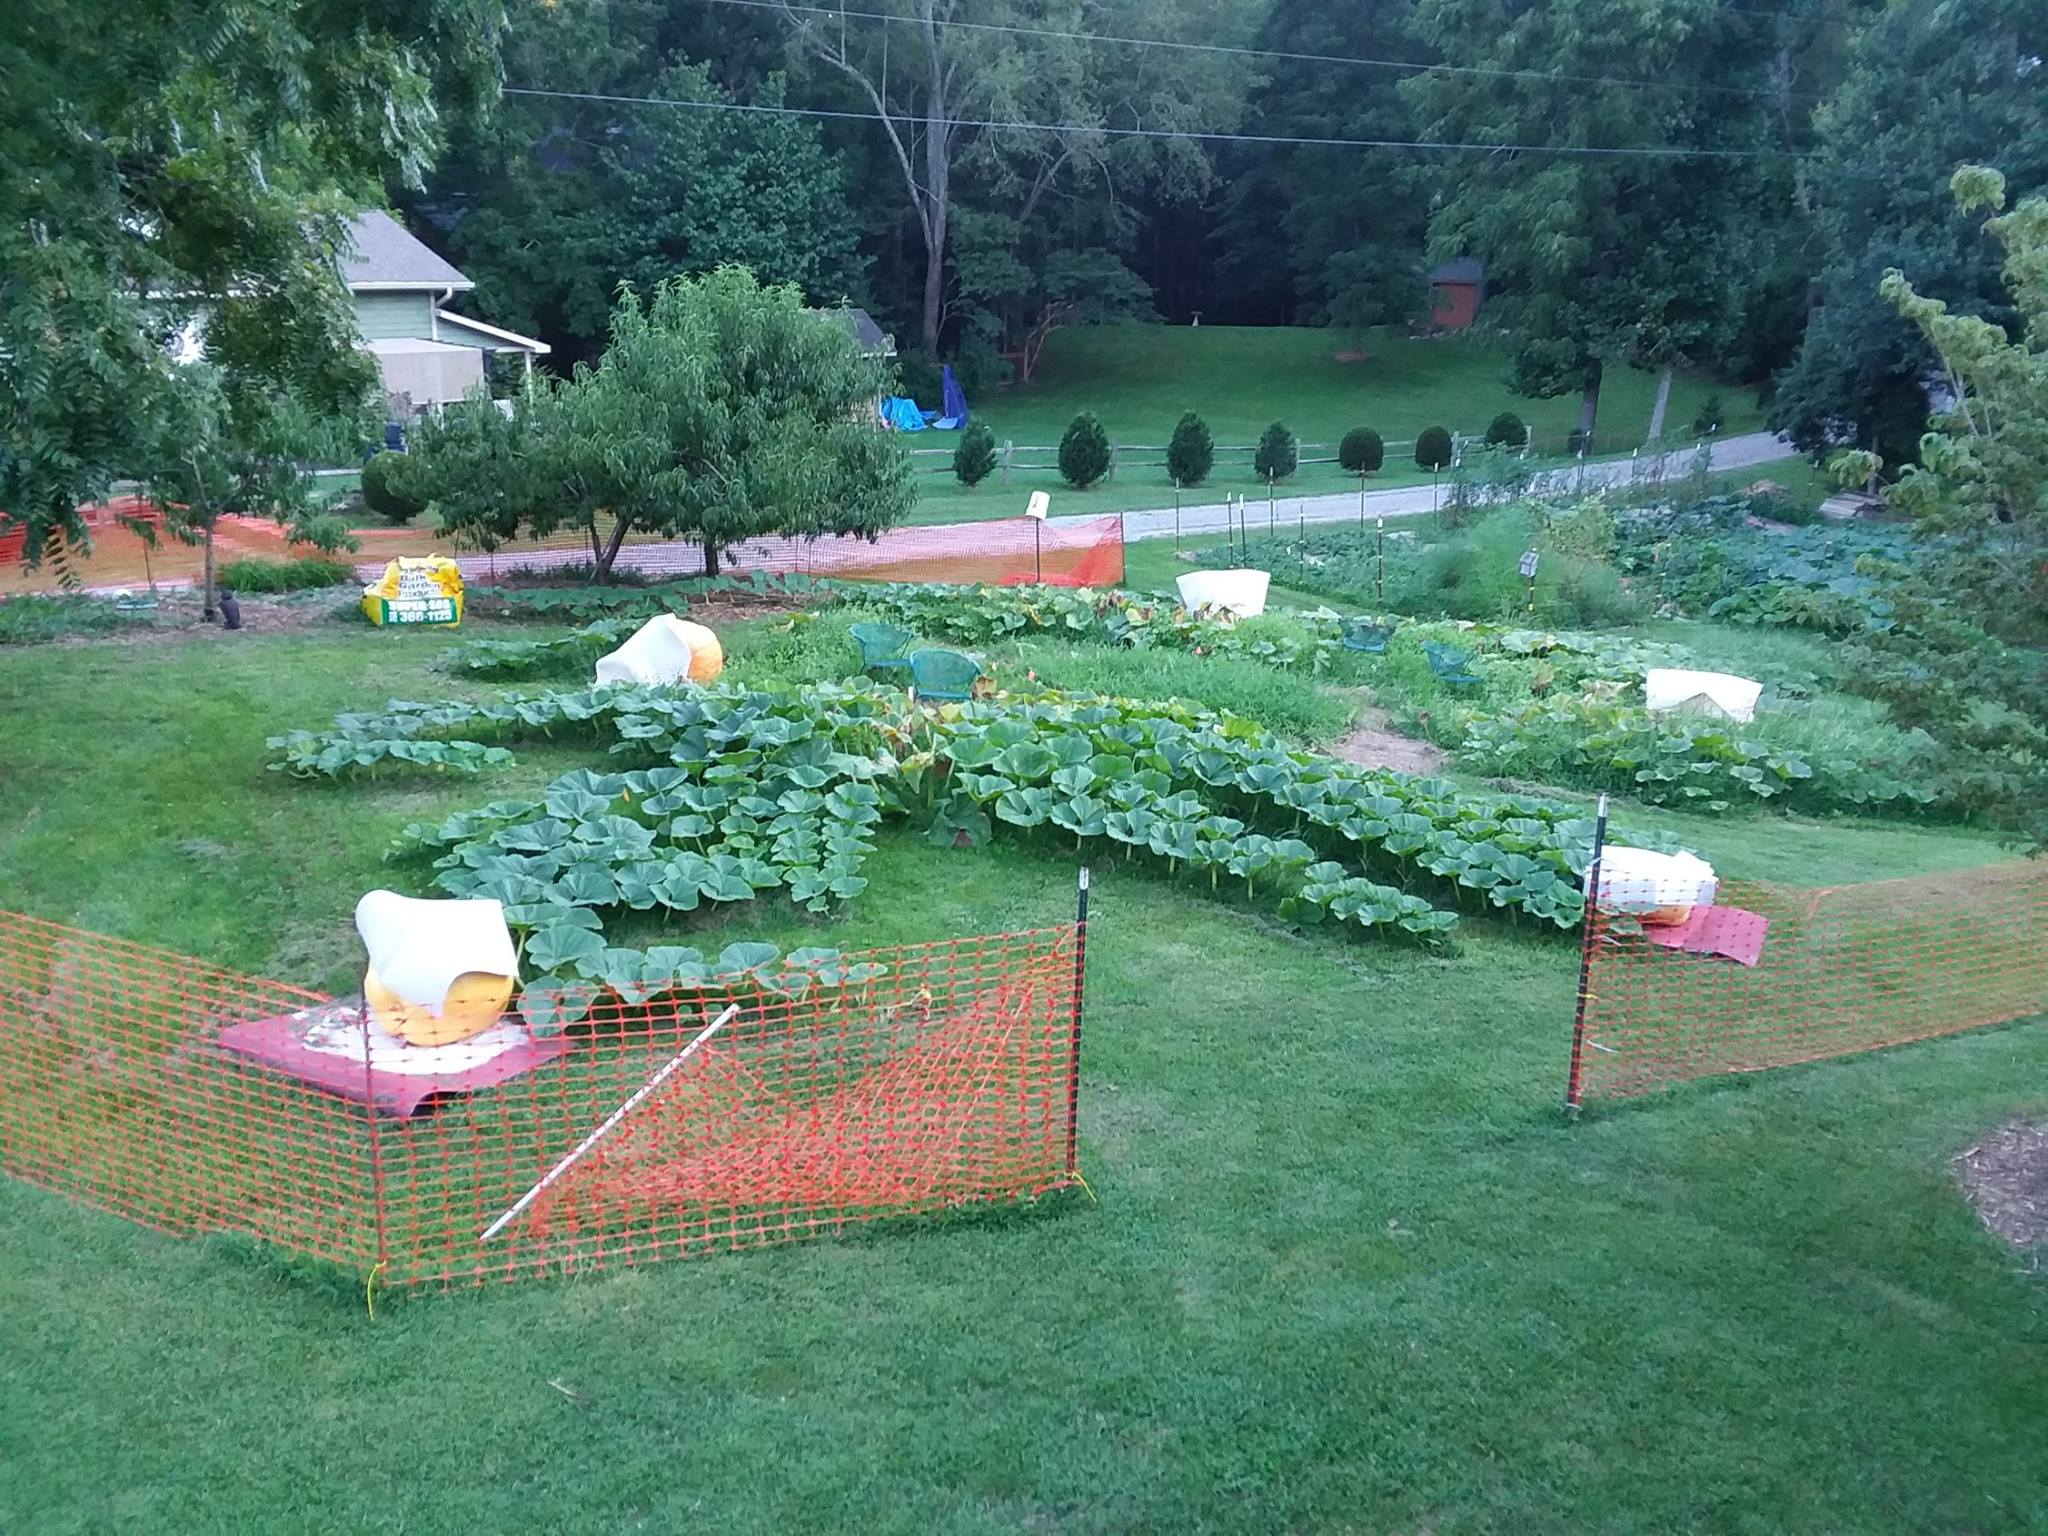 growing_giant_pumpkins_sprint_with_pollination_then_marathon_waiting_to_grow_during_70_to_100_days